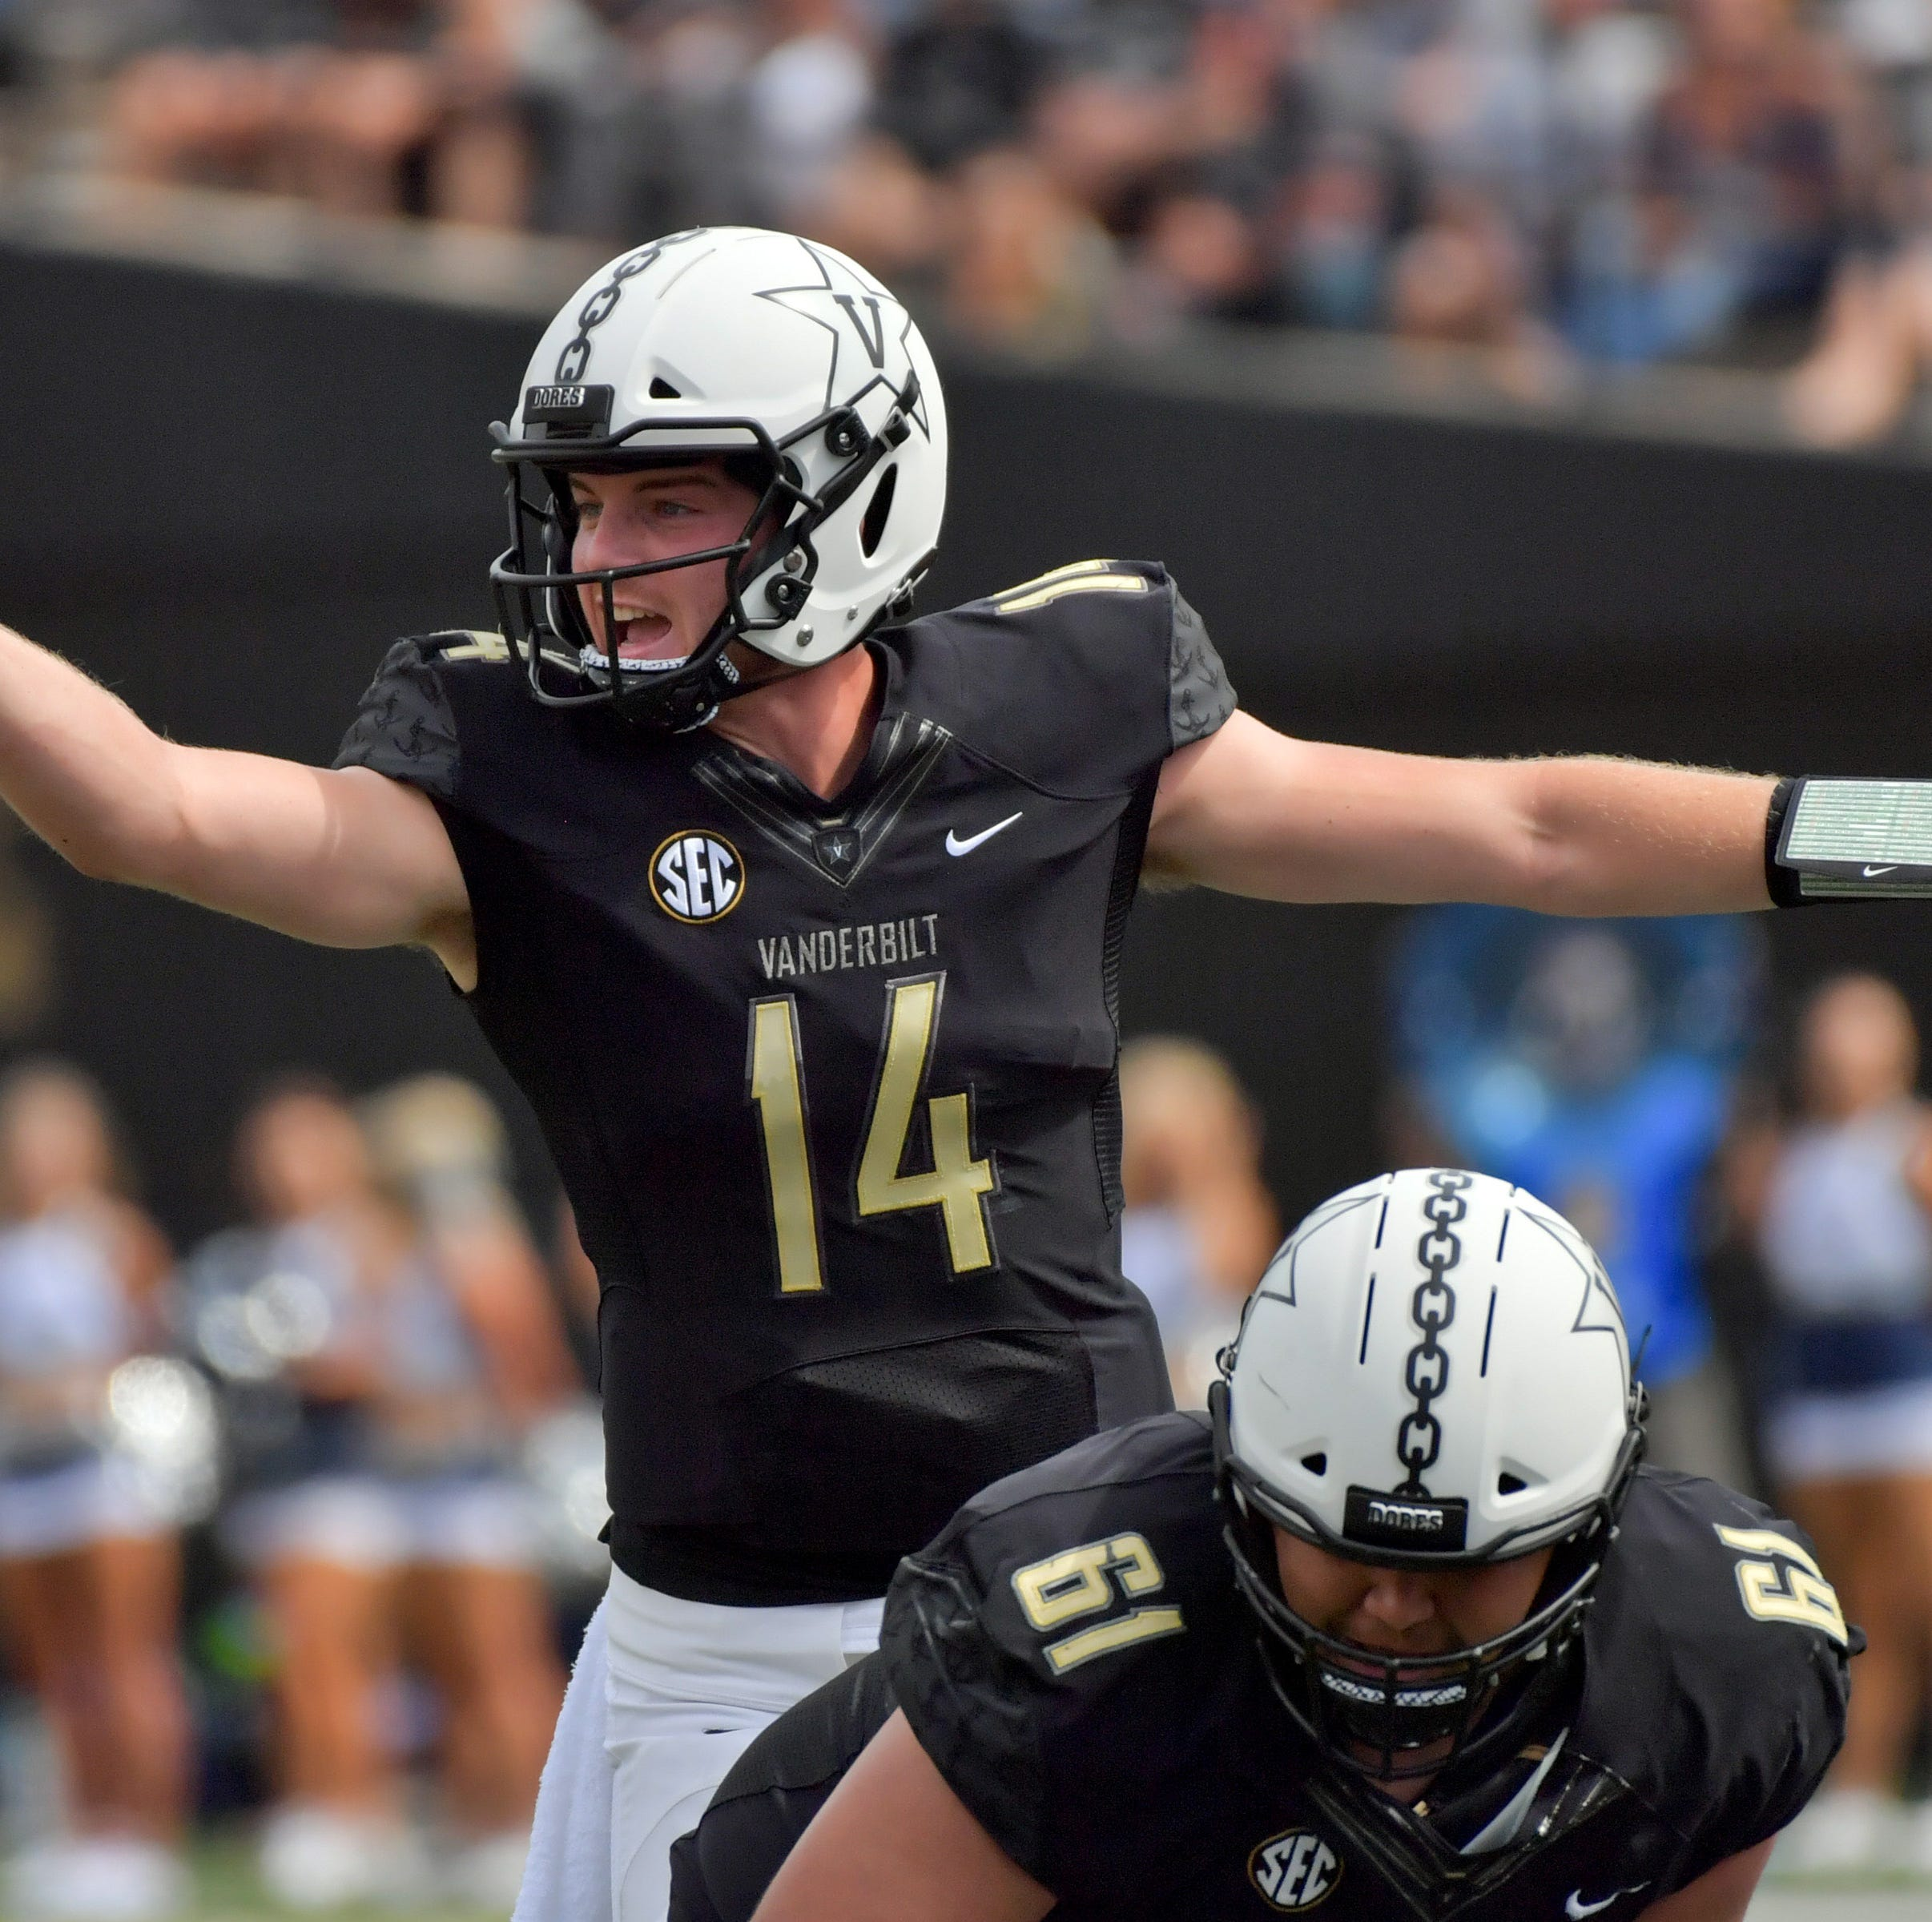 Vanderbilt quarterback Kyle Shurmur's smarts worry South Carolina Gamecocks